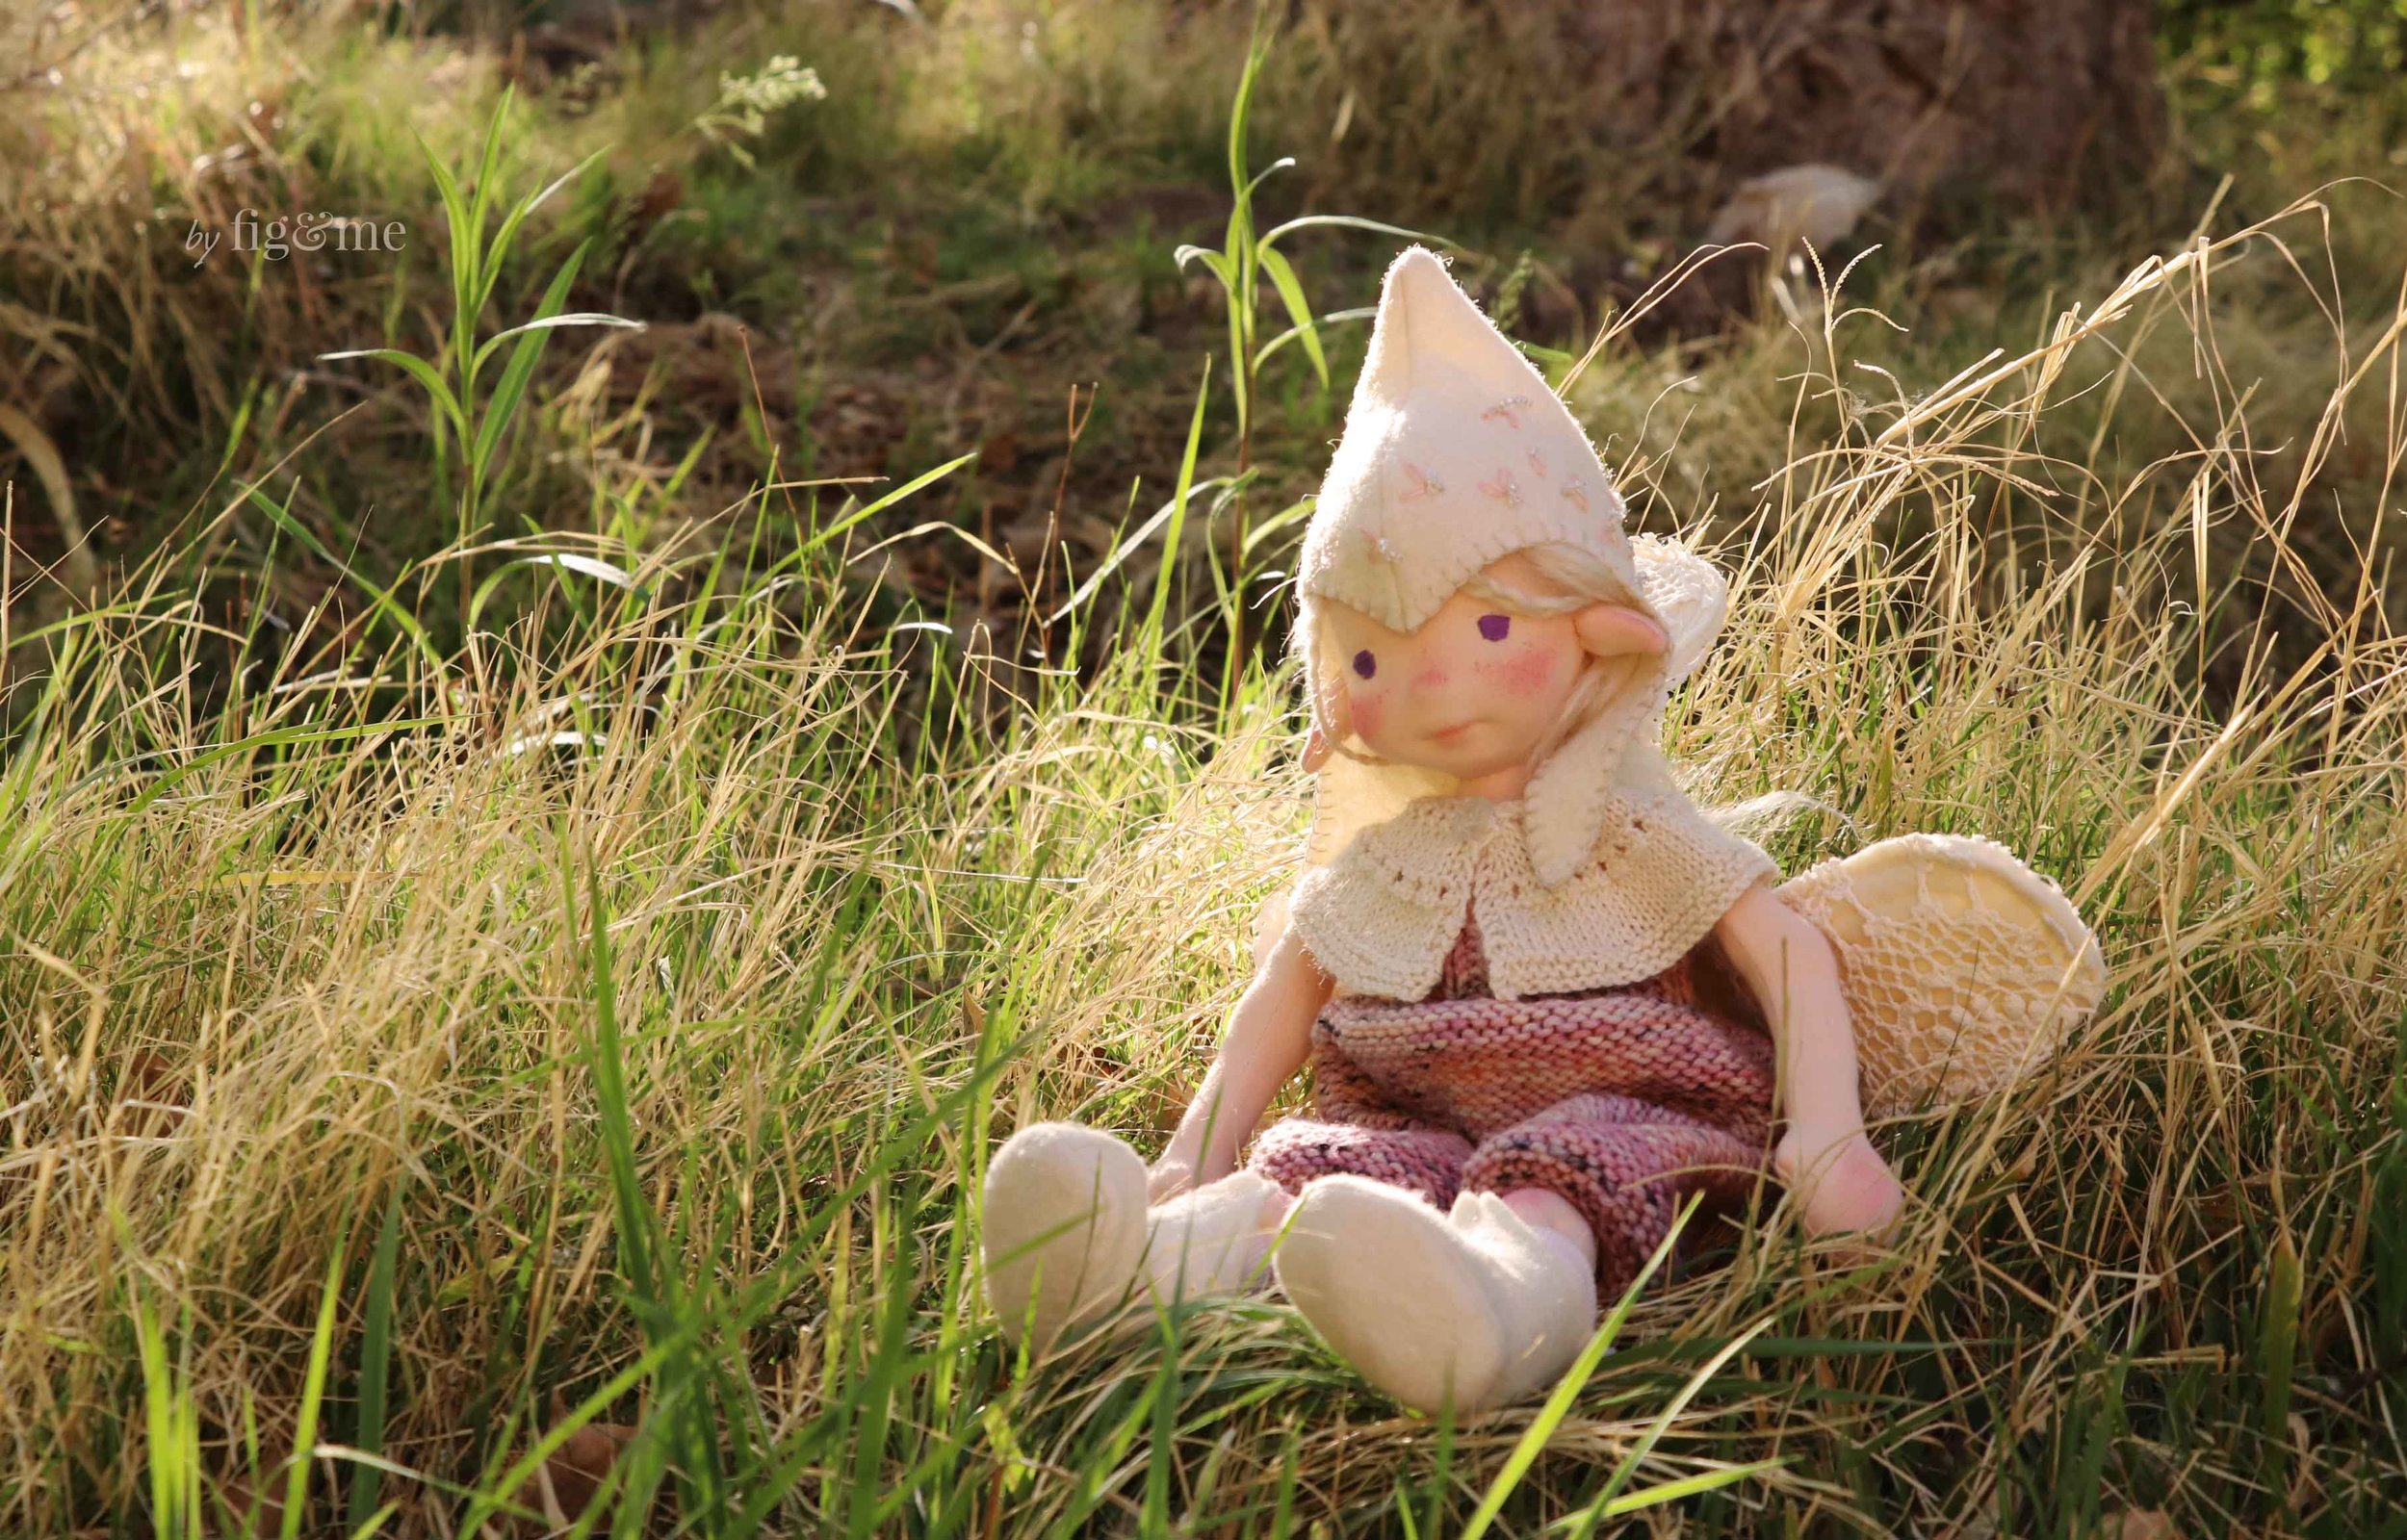 Maedhbhina, a natural fiber art doll by Fig and Me.